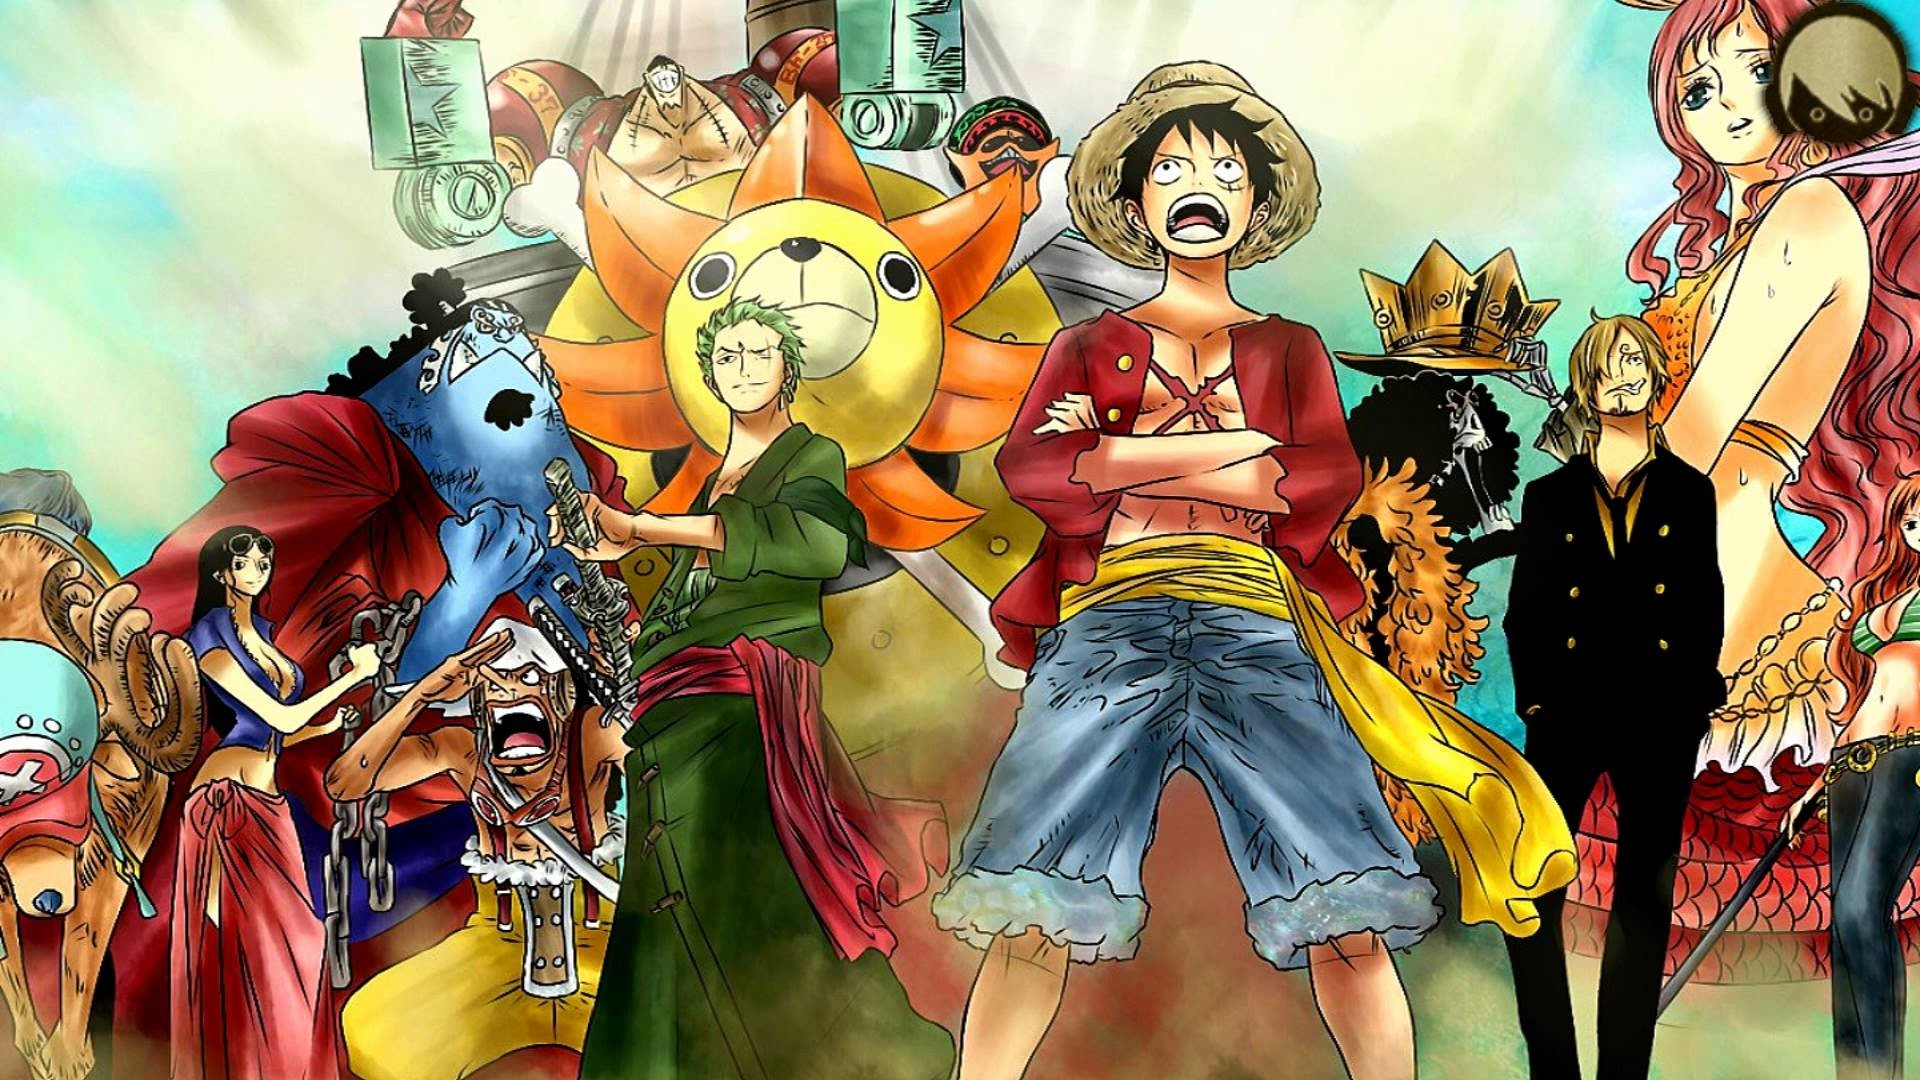 The Straw Hat Crew Hd Wallpaper Background Image 1920x1080